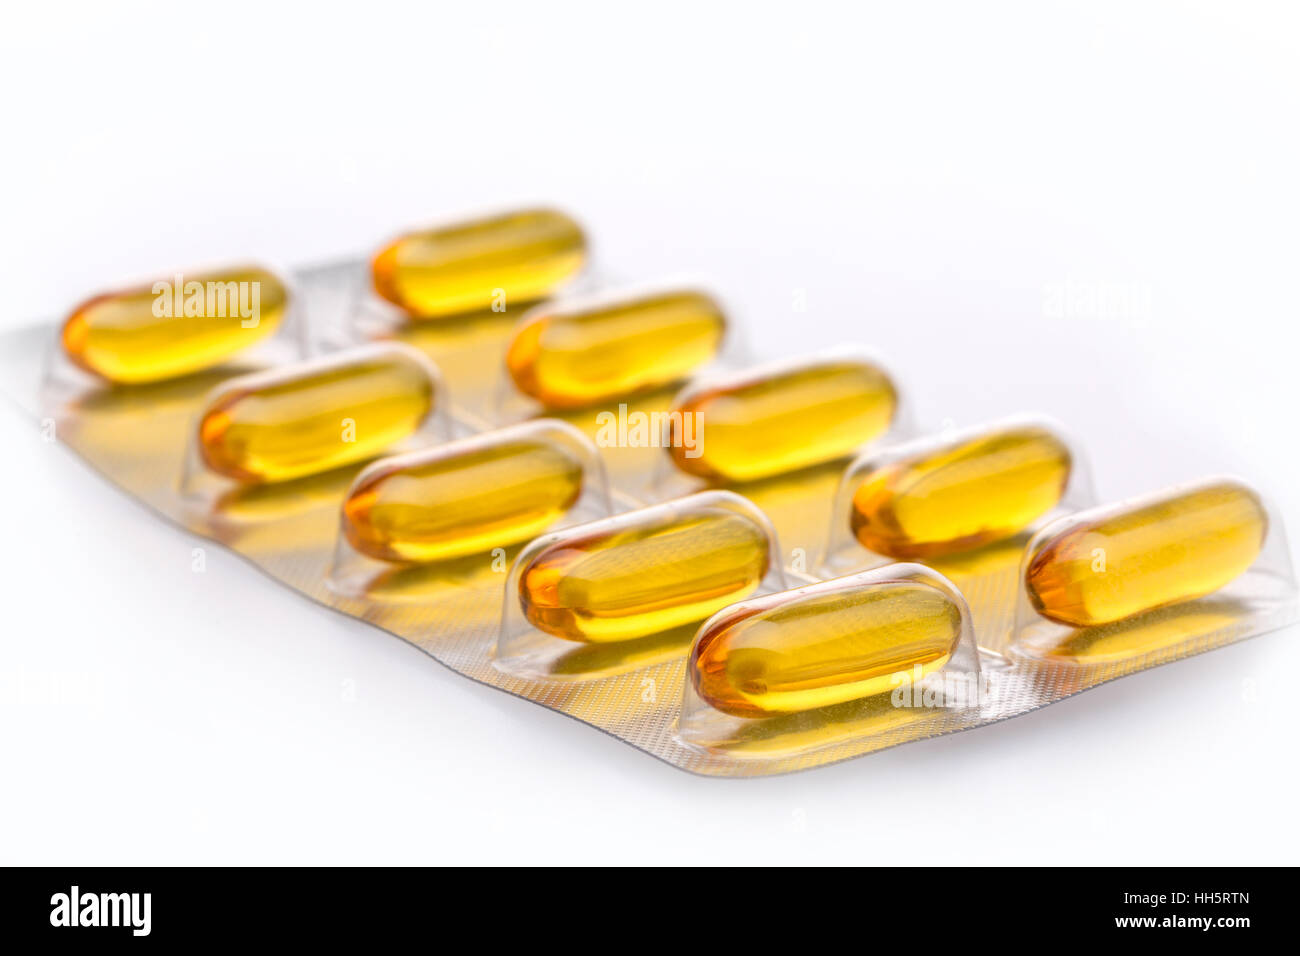 Cod Liver Oil capsules against a white background - Stock Image